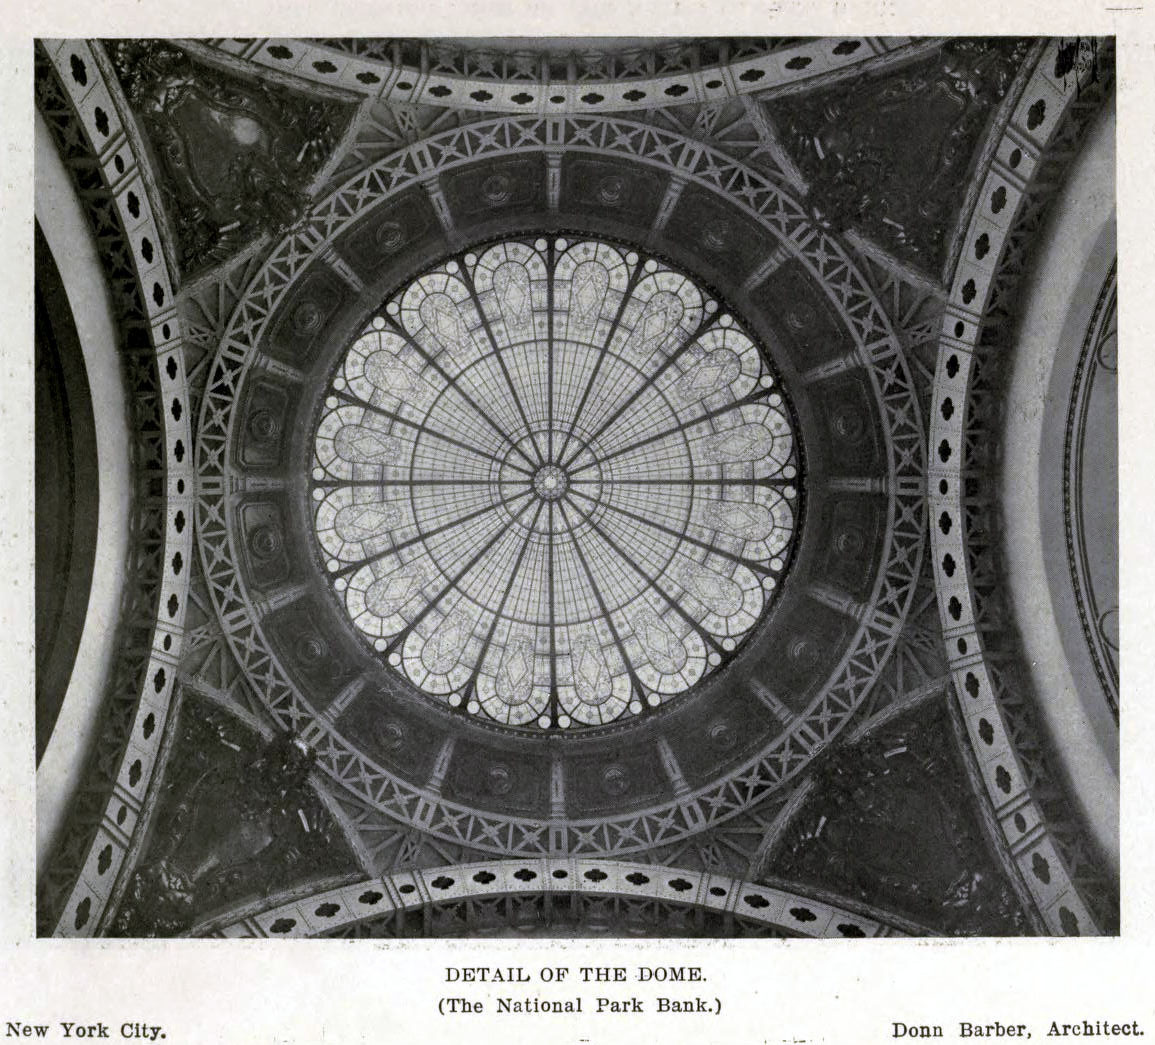 The dome of the National Park Bank, New York City